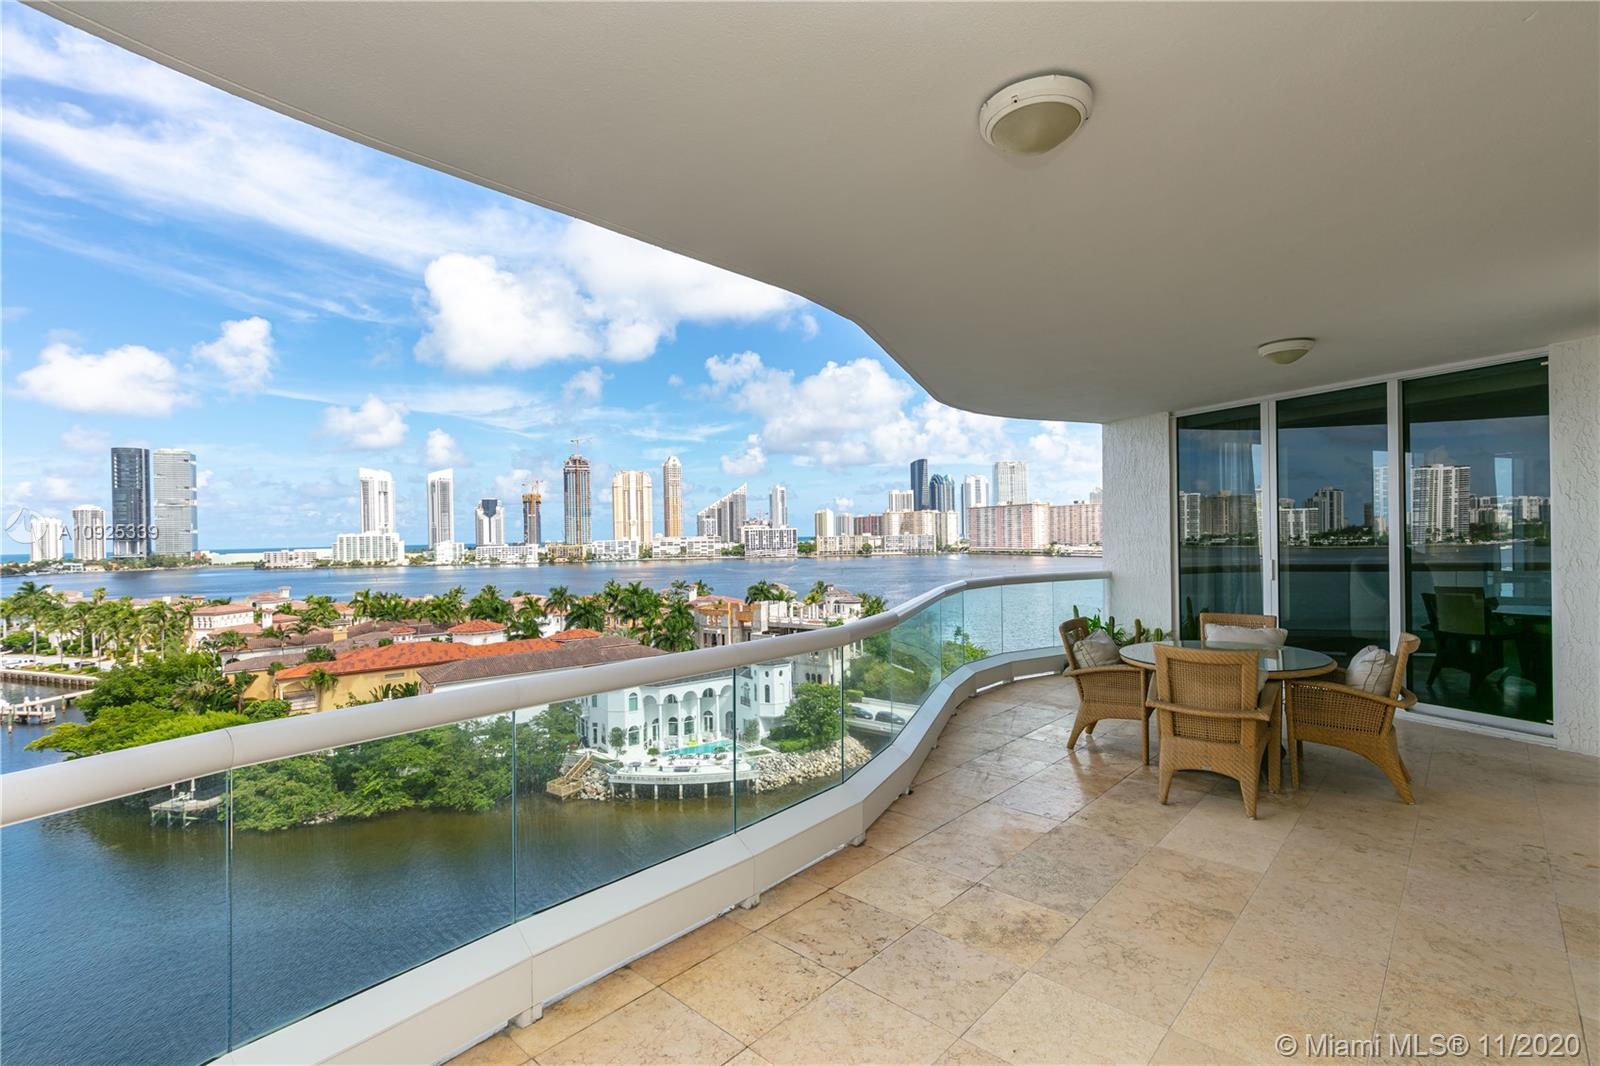 Spacious condo w/ stunning intracoastal & ocean views in the exclusive Bellamare! An expansive east-west, flow through luxury residence in prestigious Williams Island. Walk off your private elevator to be greeted by a foyer entrance, stepping onto hardwood floors & look out to sweeping views of the intracoastal & Sunny Isles beach. Unit boasts custom Venetian plastered walls, a room converted to an additional closet, and an up-lit countertop bar for the ideal entertaining experience. Kitchen features granite countertops, ss appliances, brand new hood, cappuccino machine & gas stove! Pamper yourself w/ world class amenities, comfort & conveniences that only a 5-star resort style condo offers! Enjoy the Williams Island spa, restaurants, tennis club, jogging path, marina + much more!